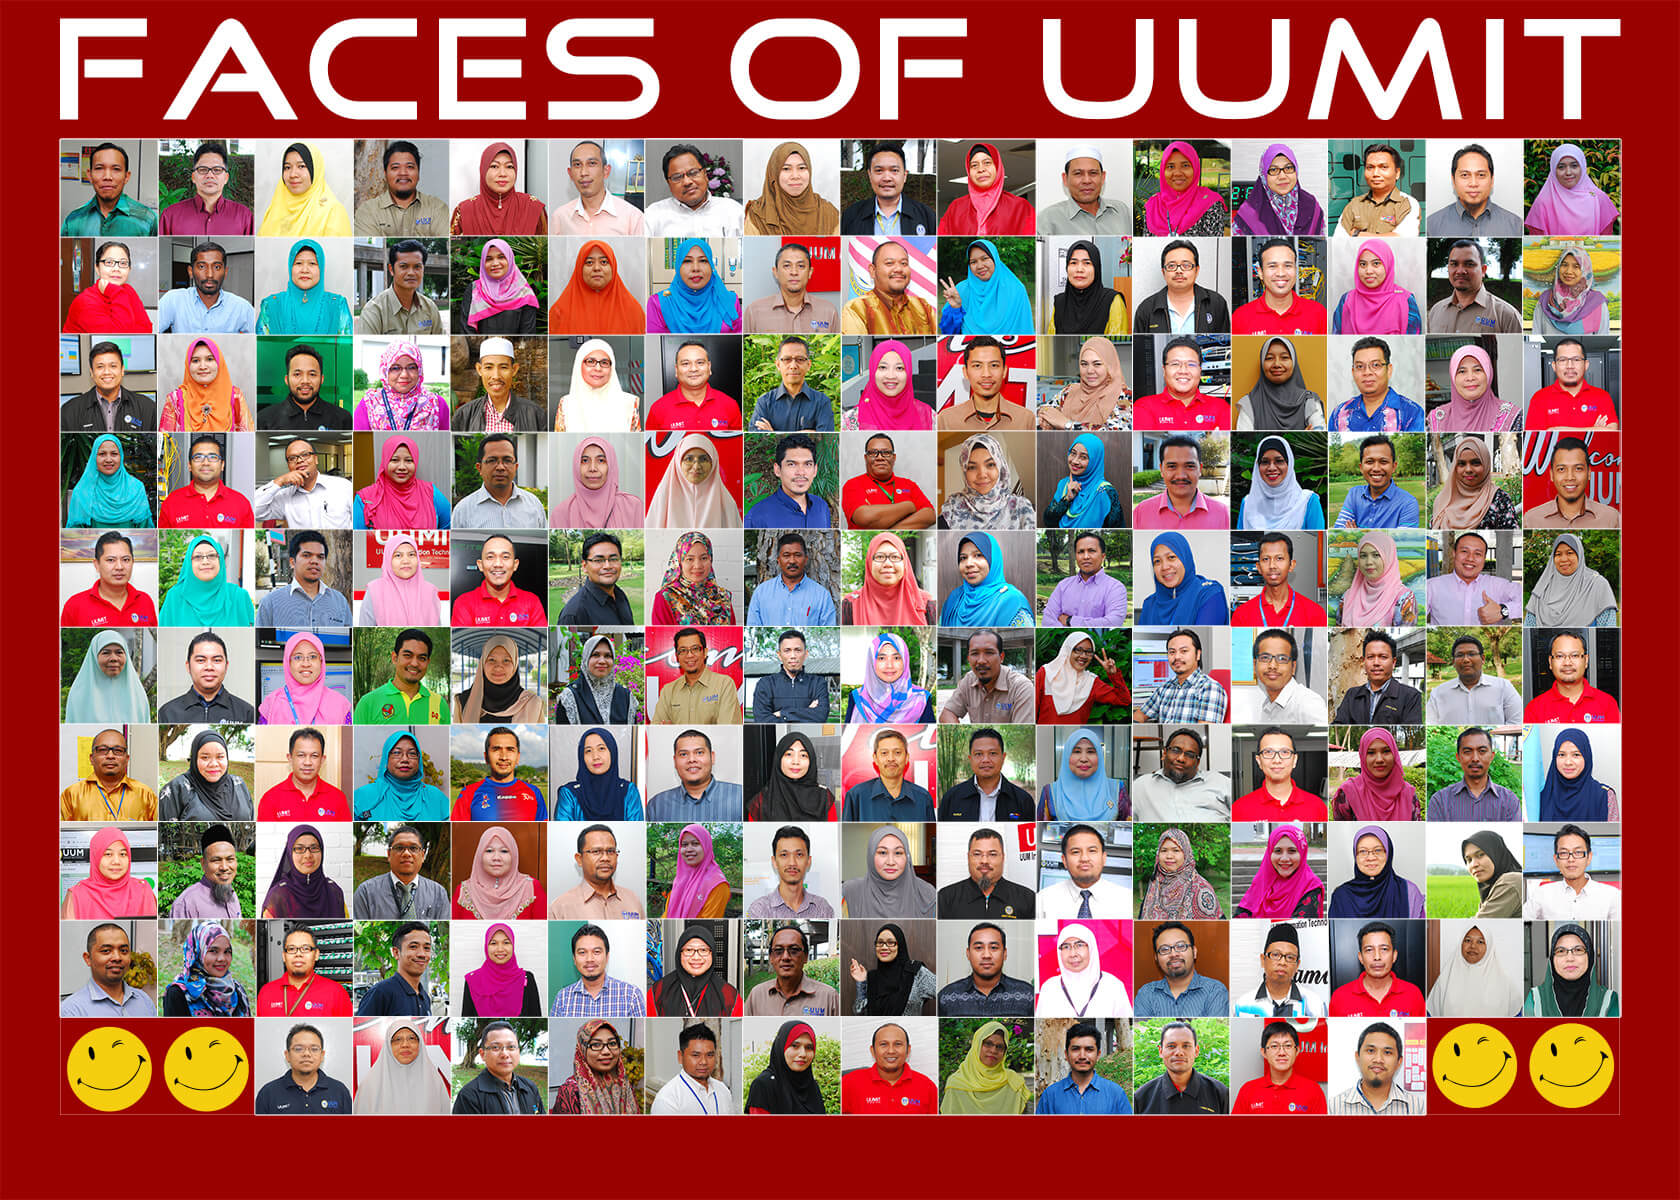 Faces of UUMIT 2016